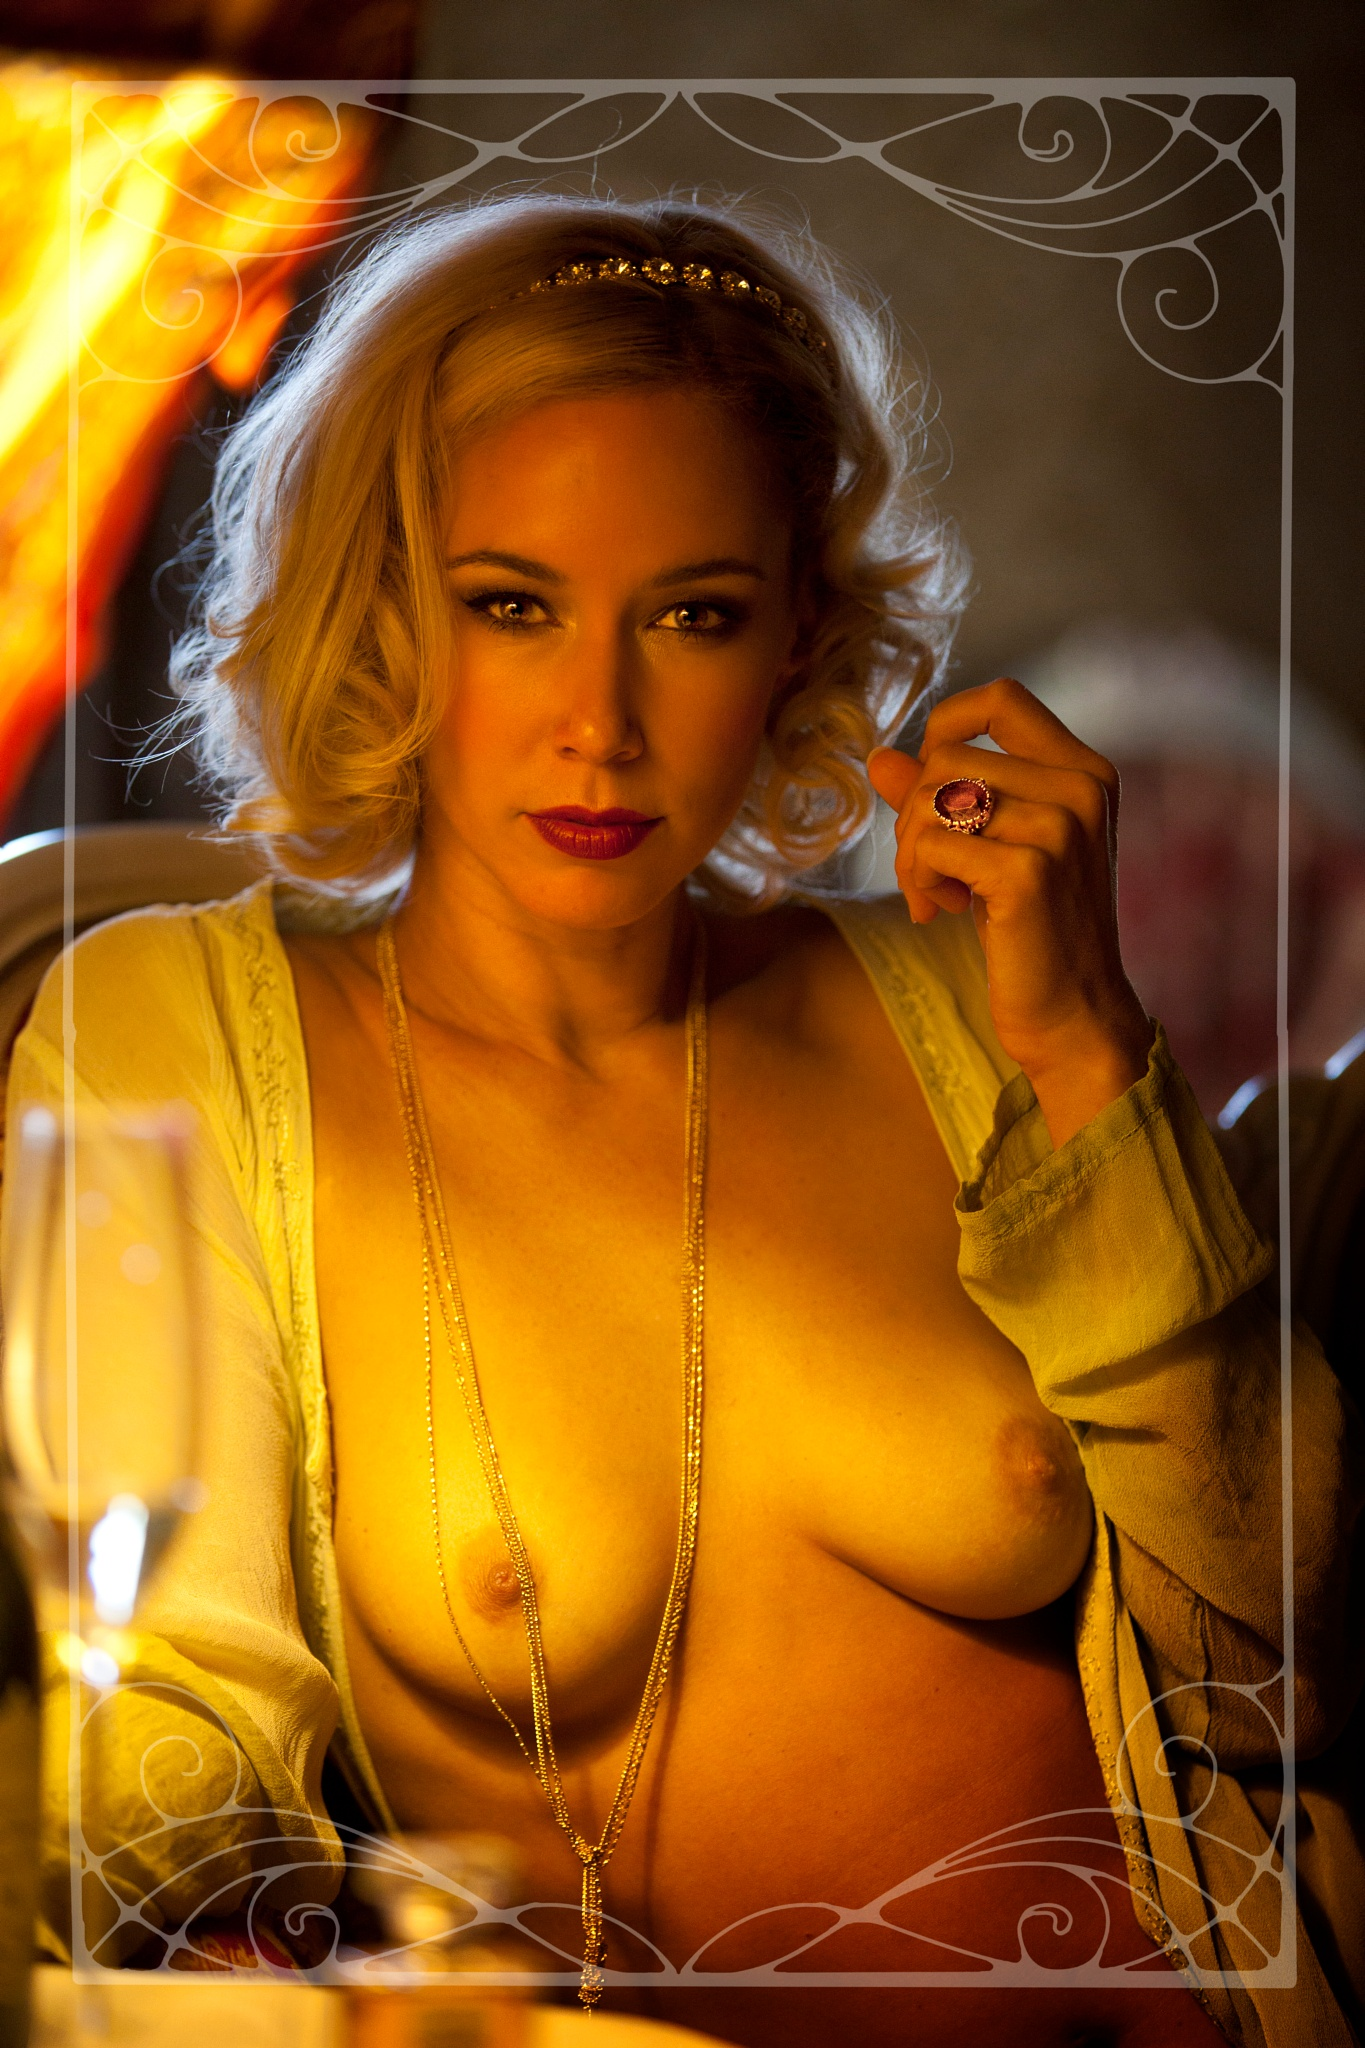 Heather Rae in A CHOICE BIT OF CALICO by Edward_Laughlin